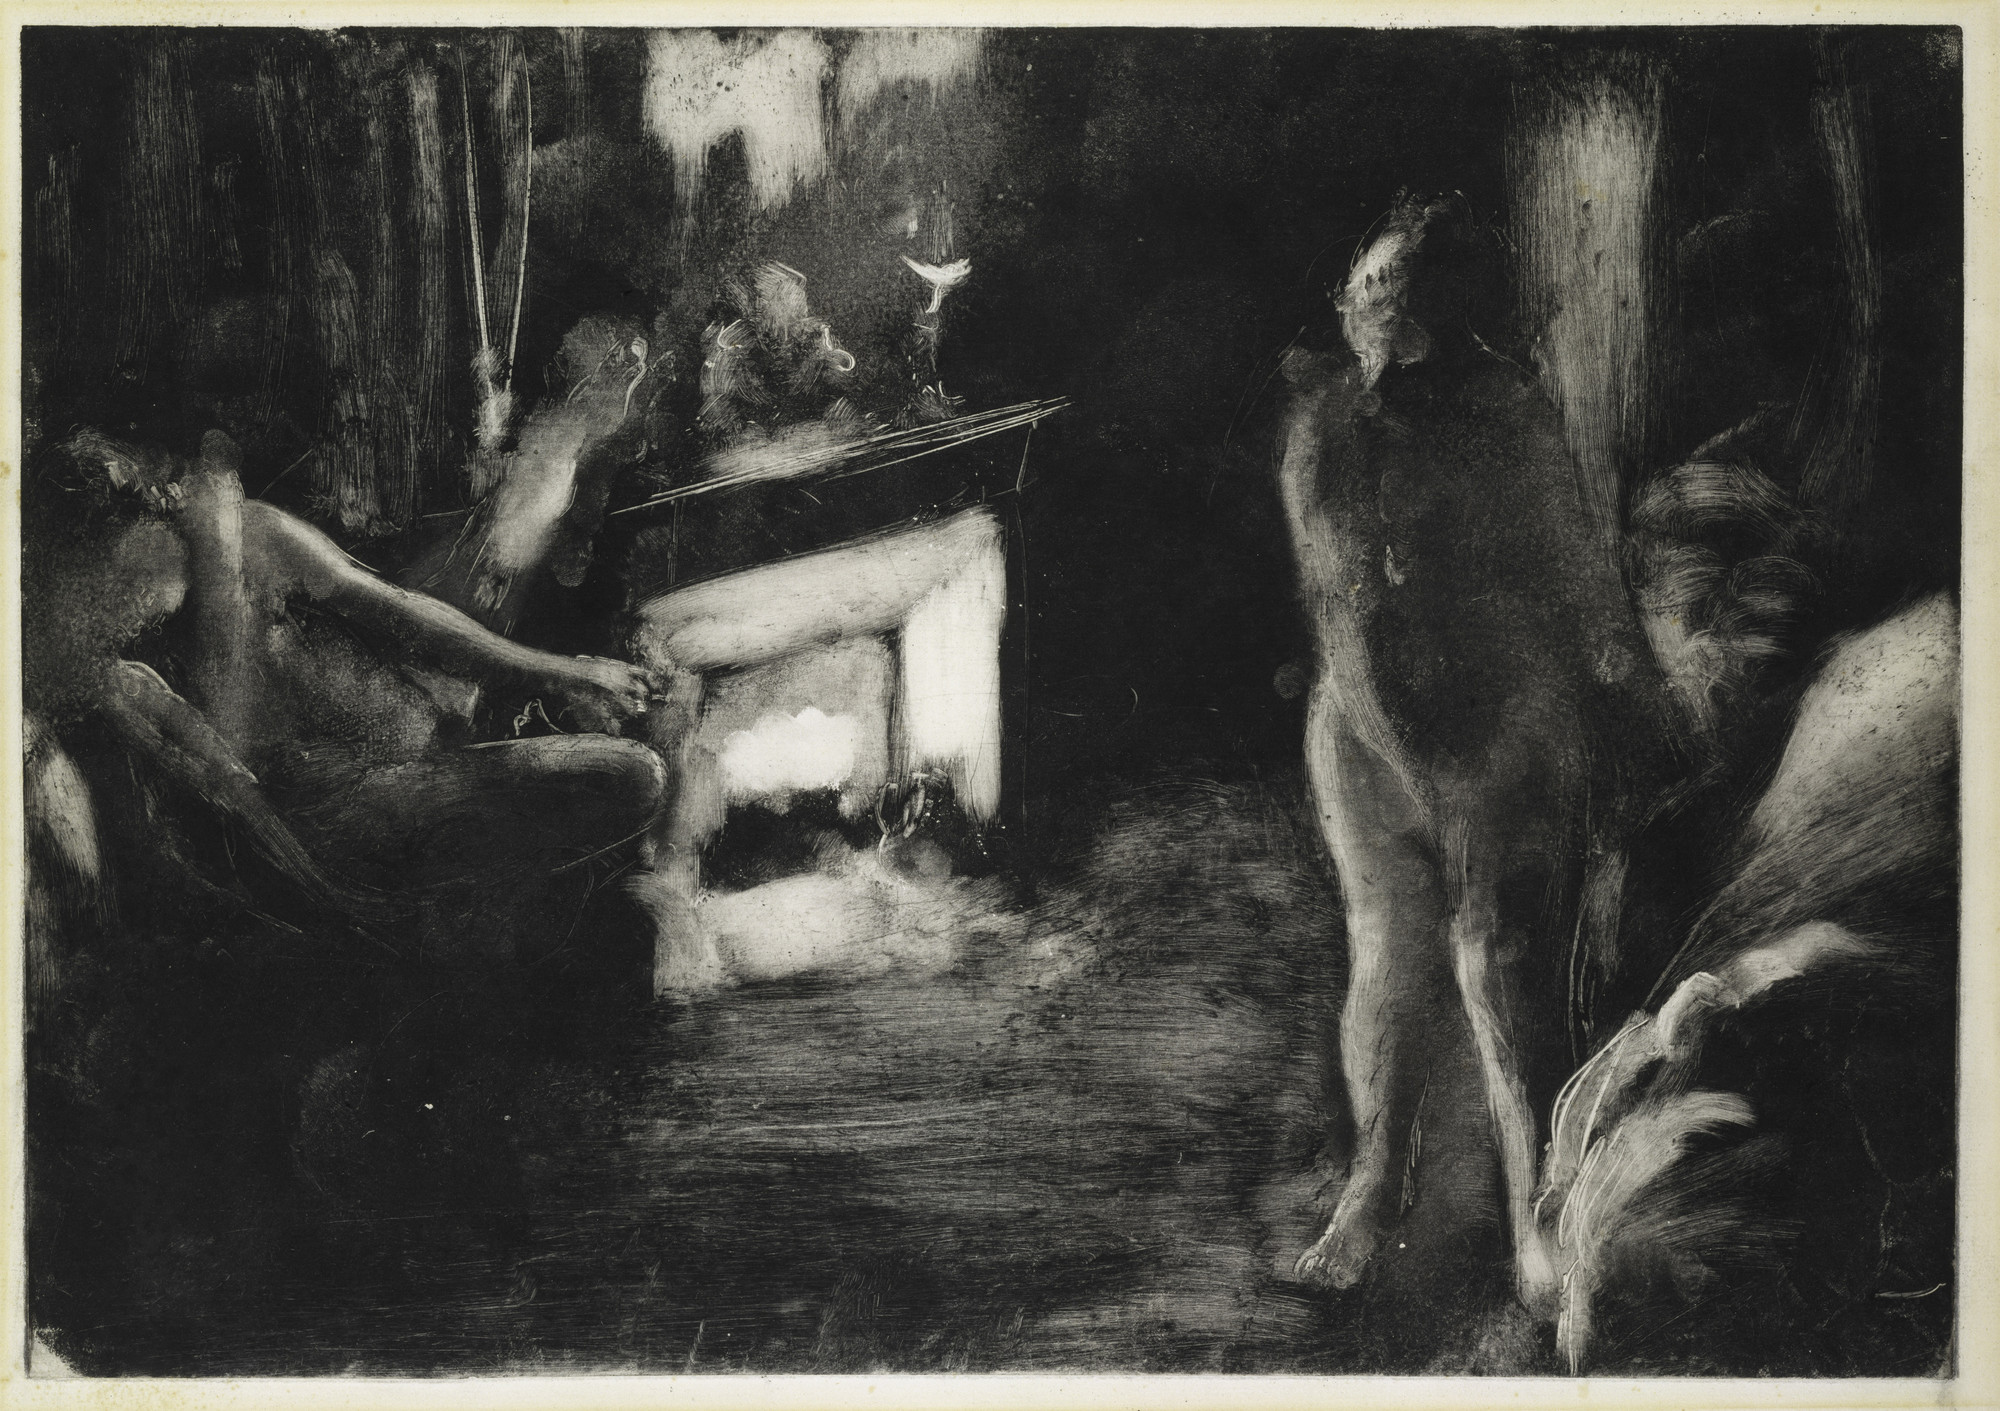 *The Fireside (Le Foyer [La Cheminée])*